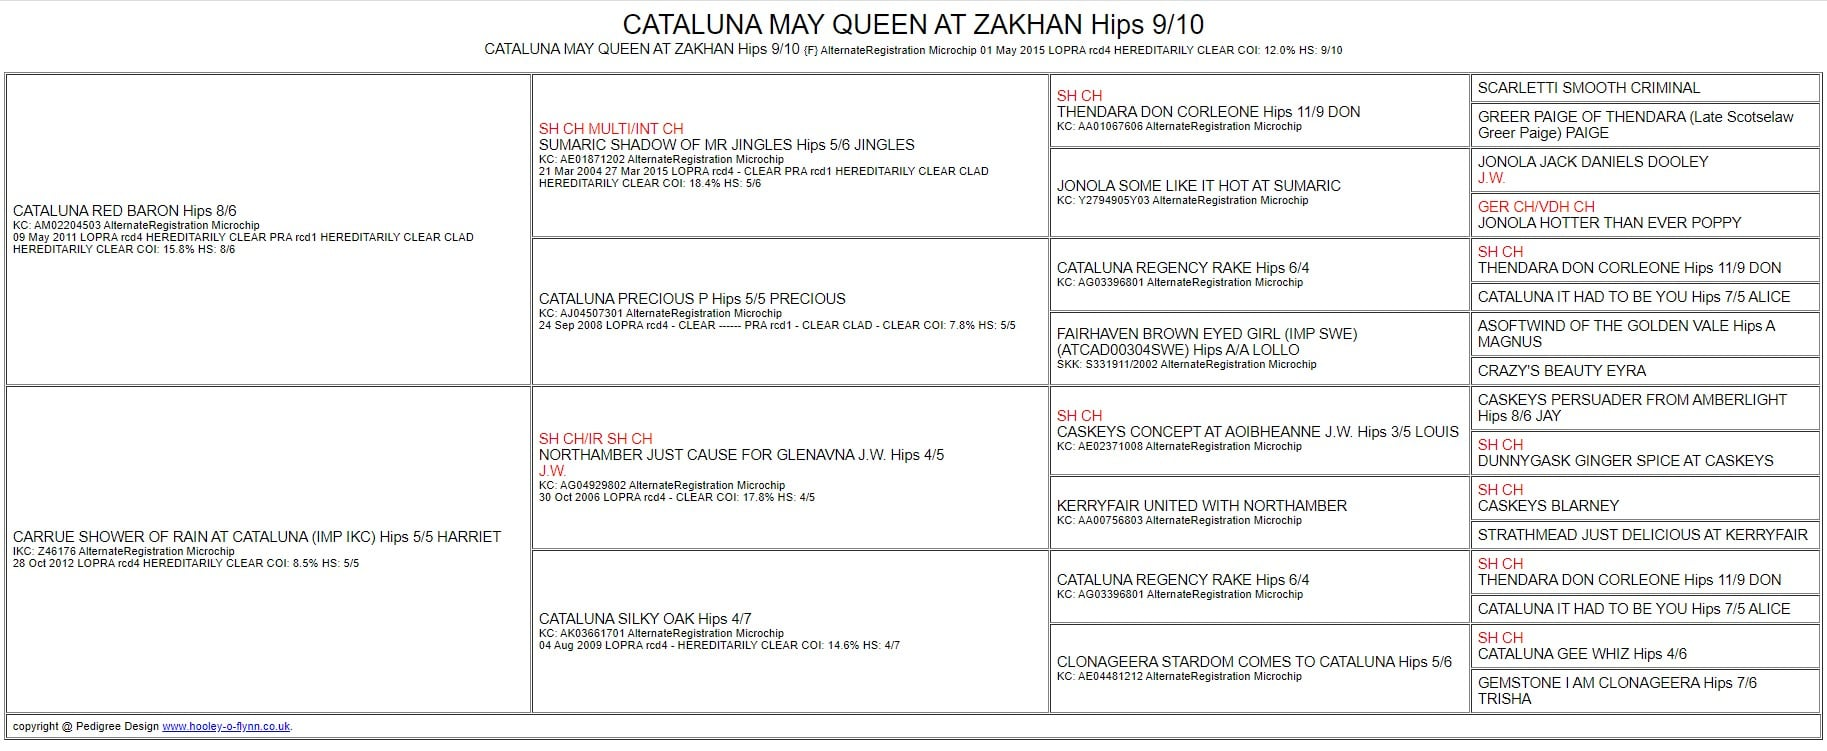 PEDIGREE: KENZIE - CATALUNA MAY QUEEN AT ZAKHAN